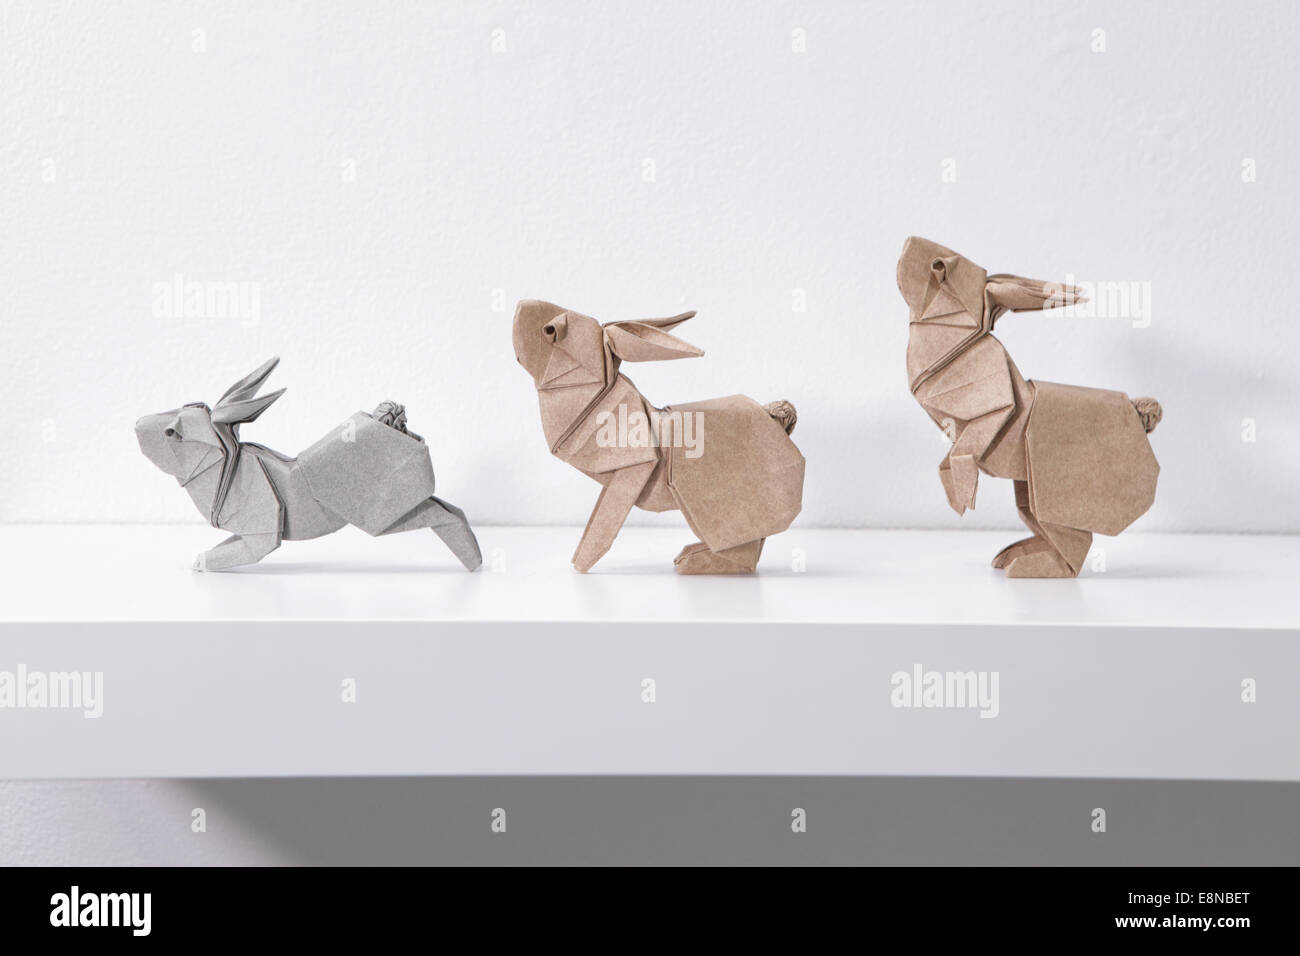 Three origami Rabbits in Motion designed by Ronald Koh, Singapore - Stock Image